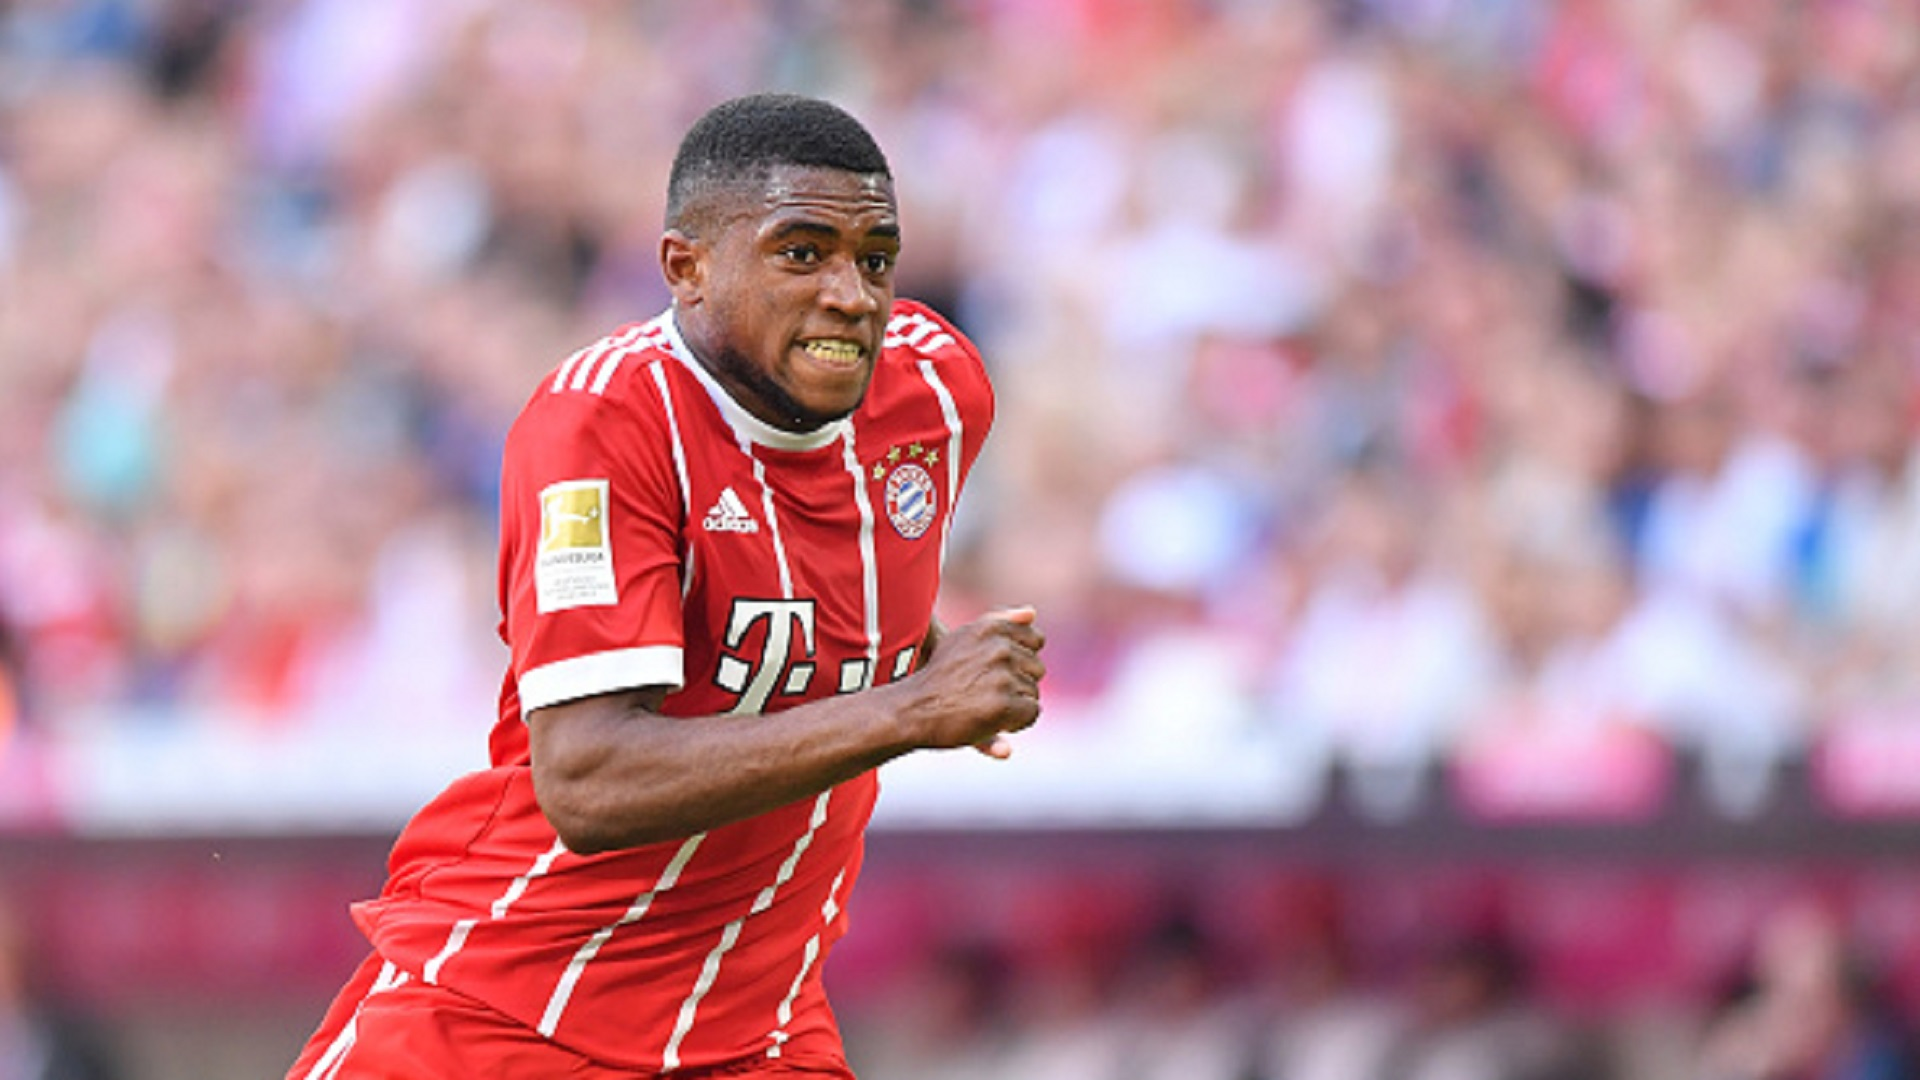 U23 Afcon: Bayern Munich starlet Evina headlines Cameroon's squad to face Ghana